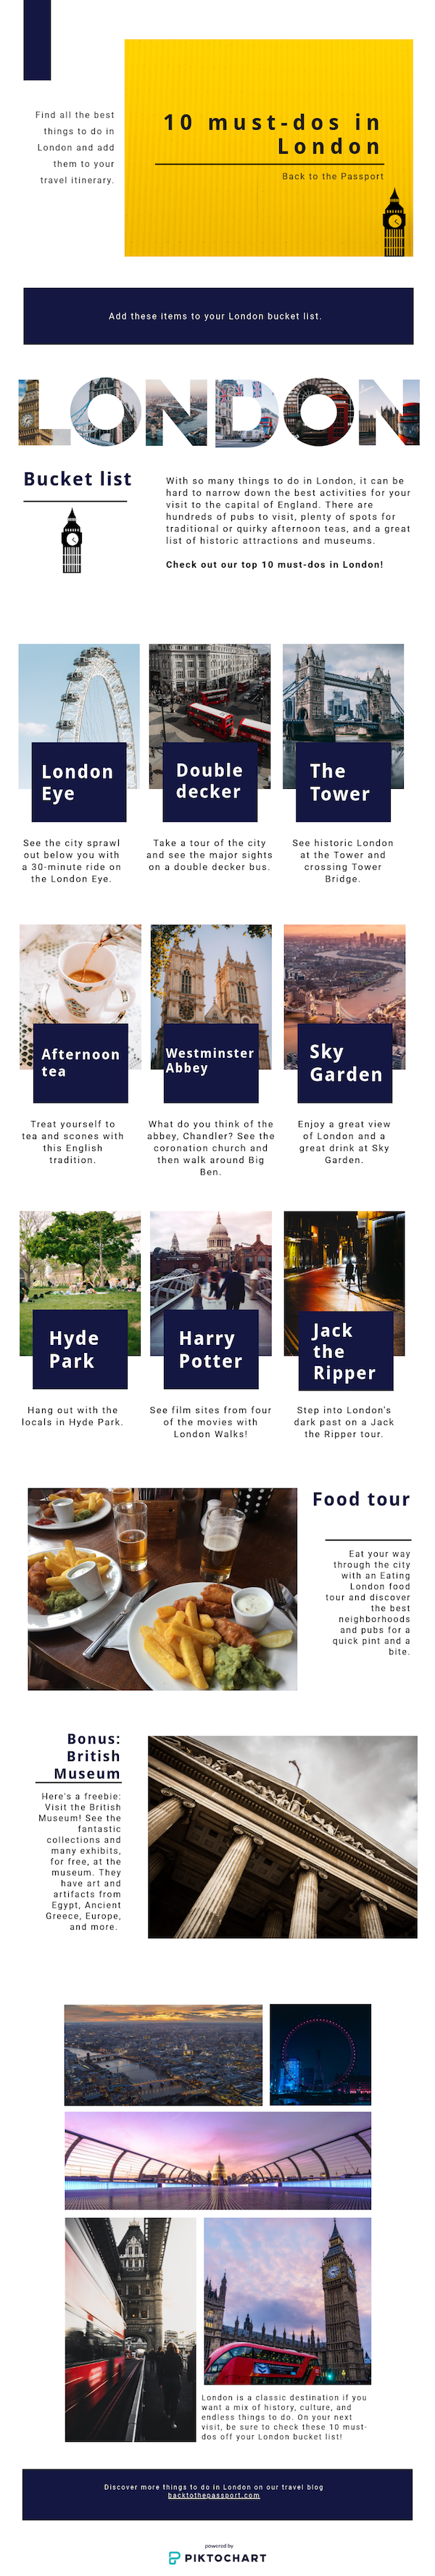 10 must-dos in London infographic